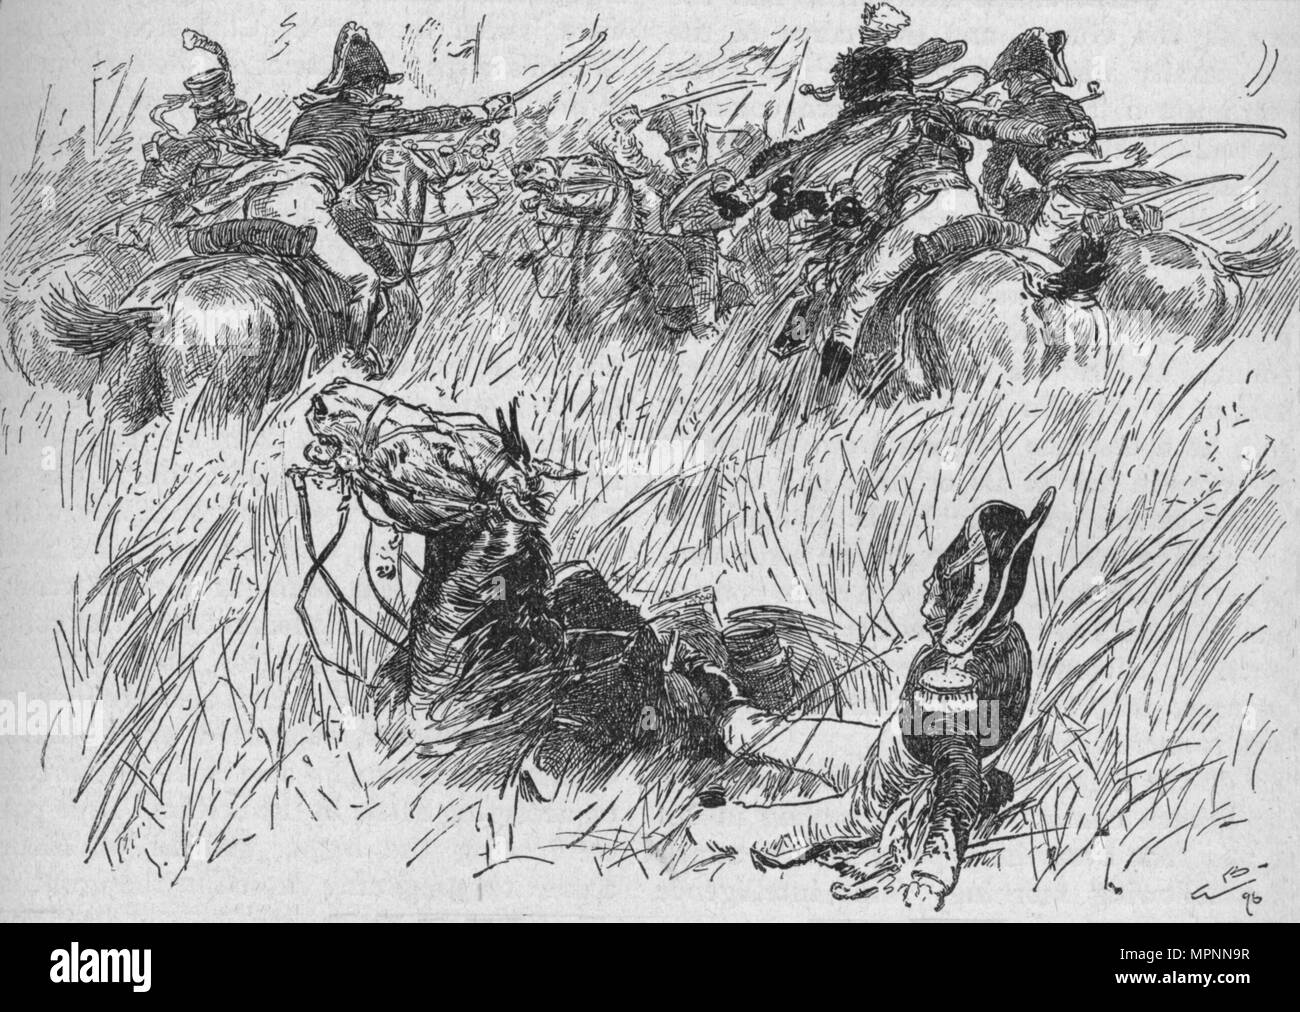 'The General's Horse Fell Into A Ditch', 1896, (1902). Artist: Gordon Frederick Browne. - Stock Image